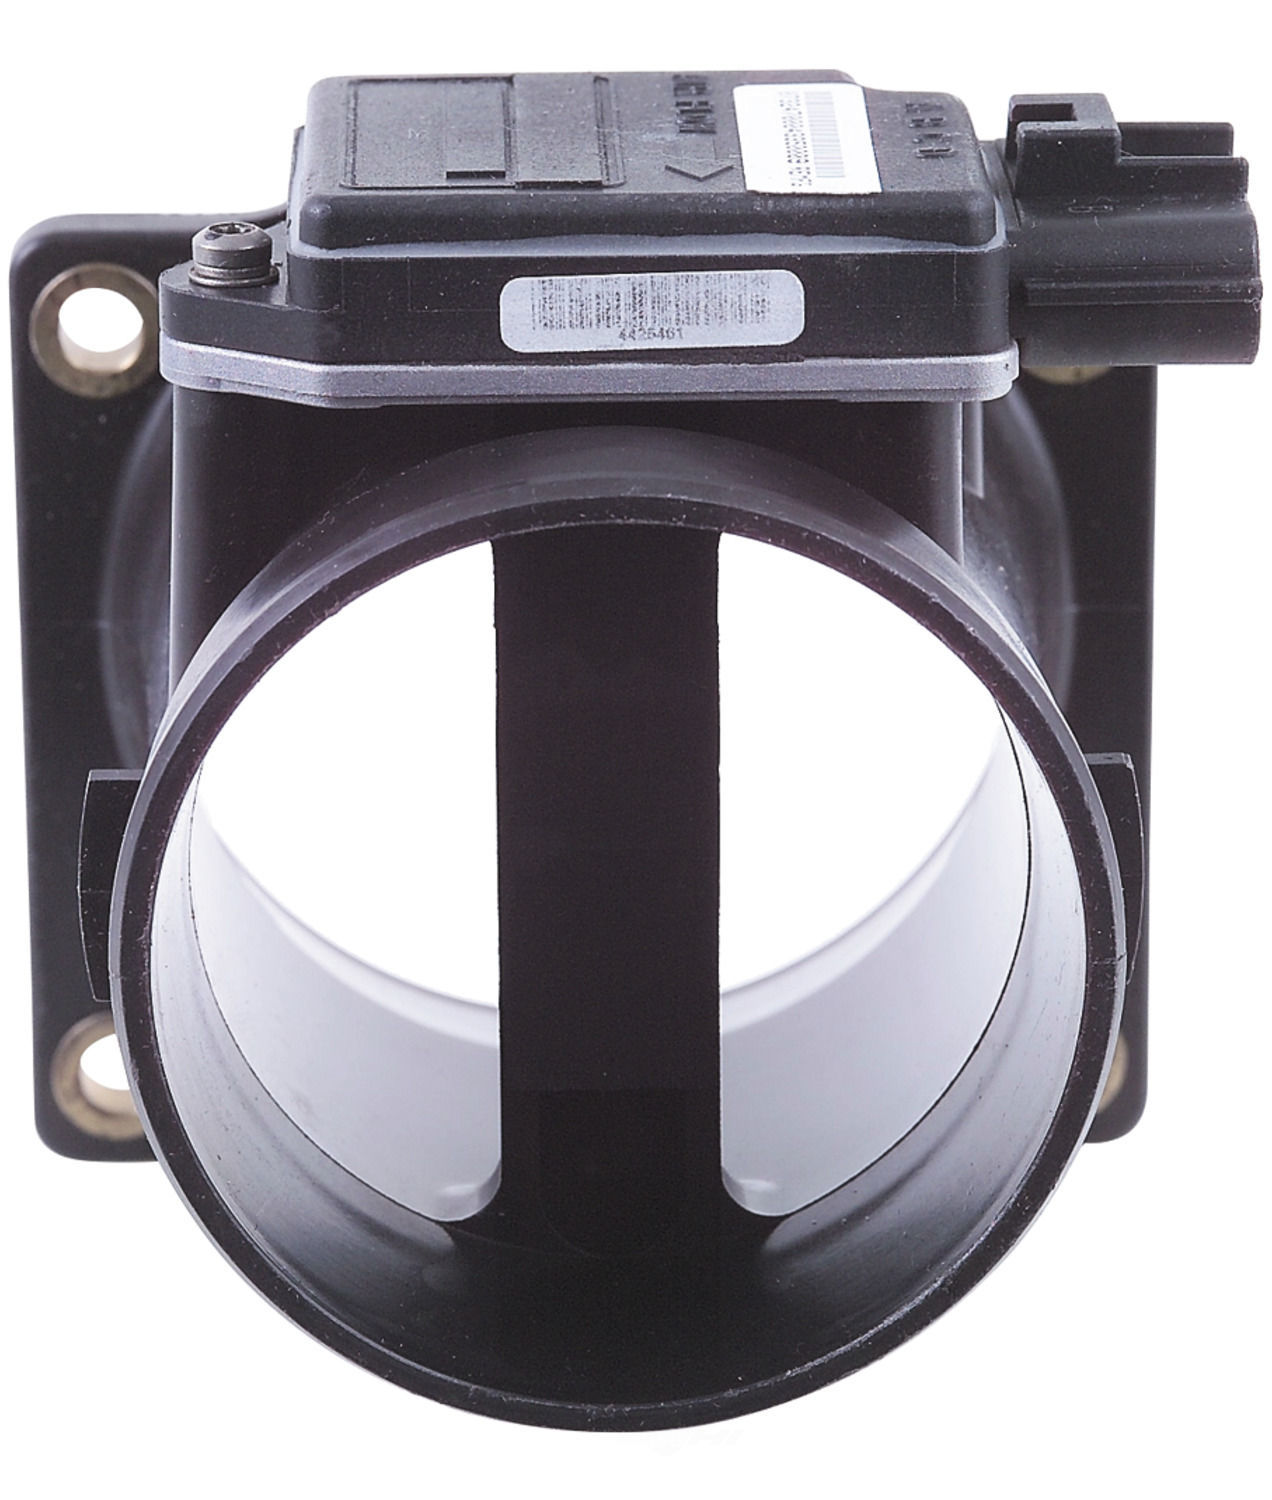 CARDONE REMAN - Mass Air Flow Sensor - A1C 74-9538